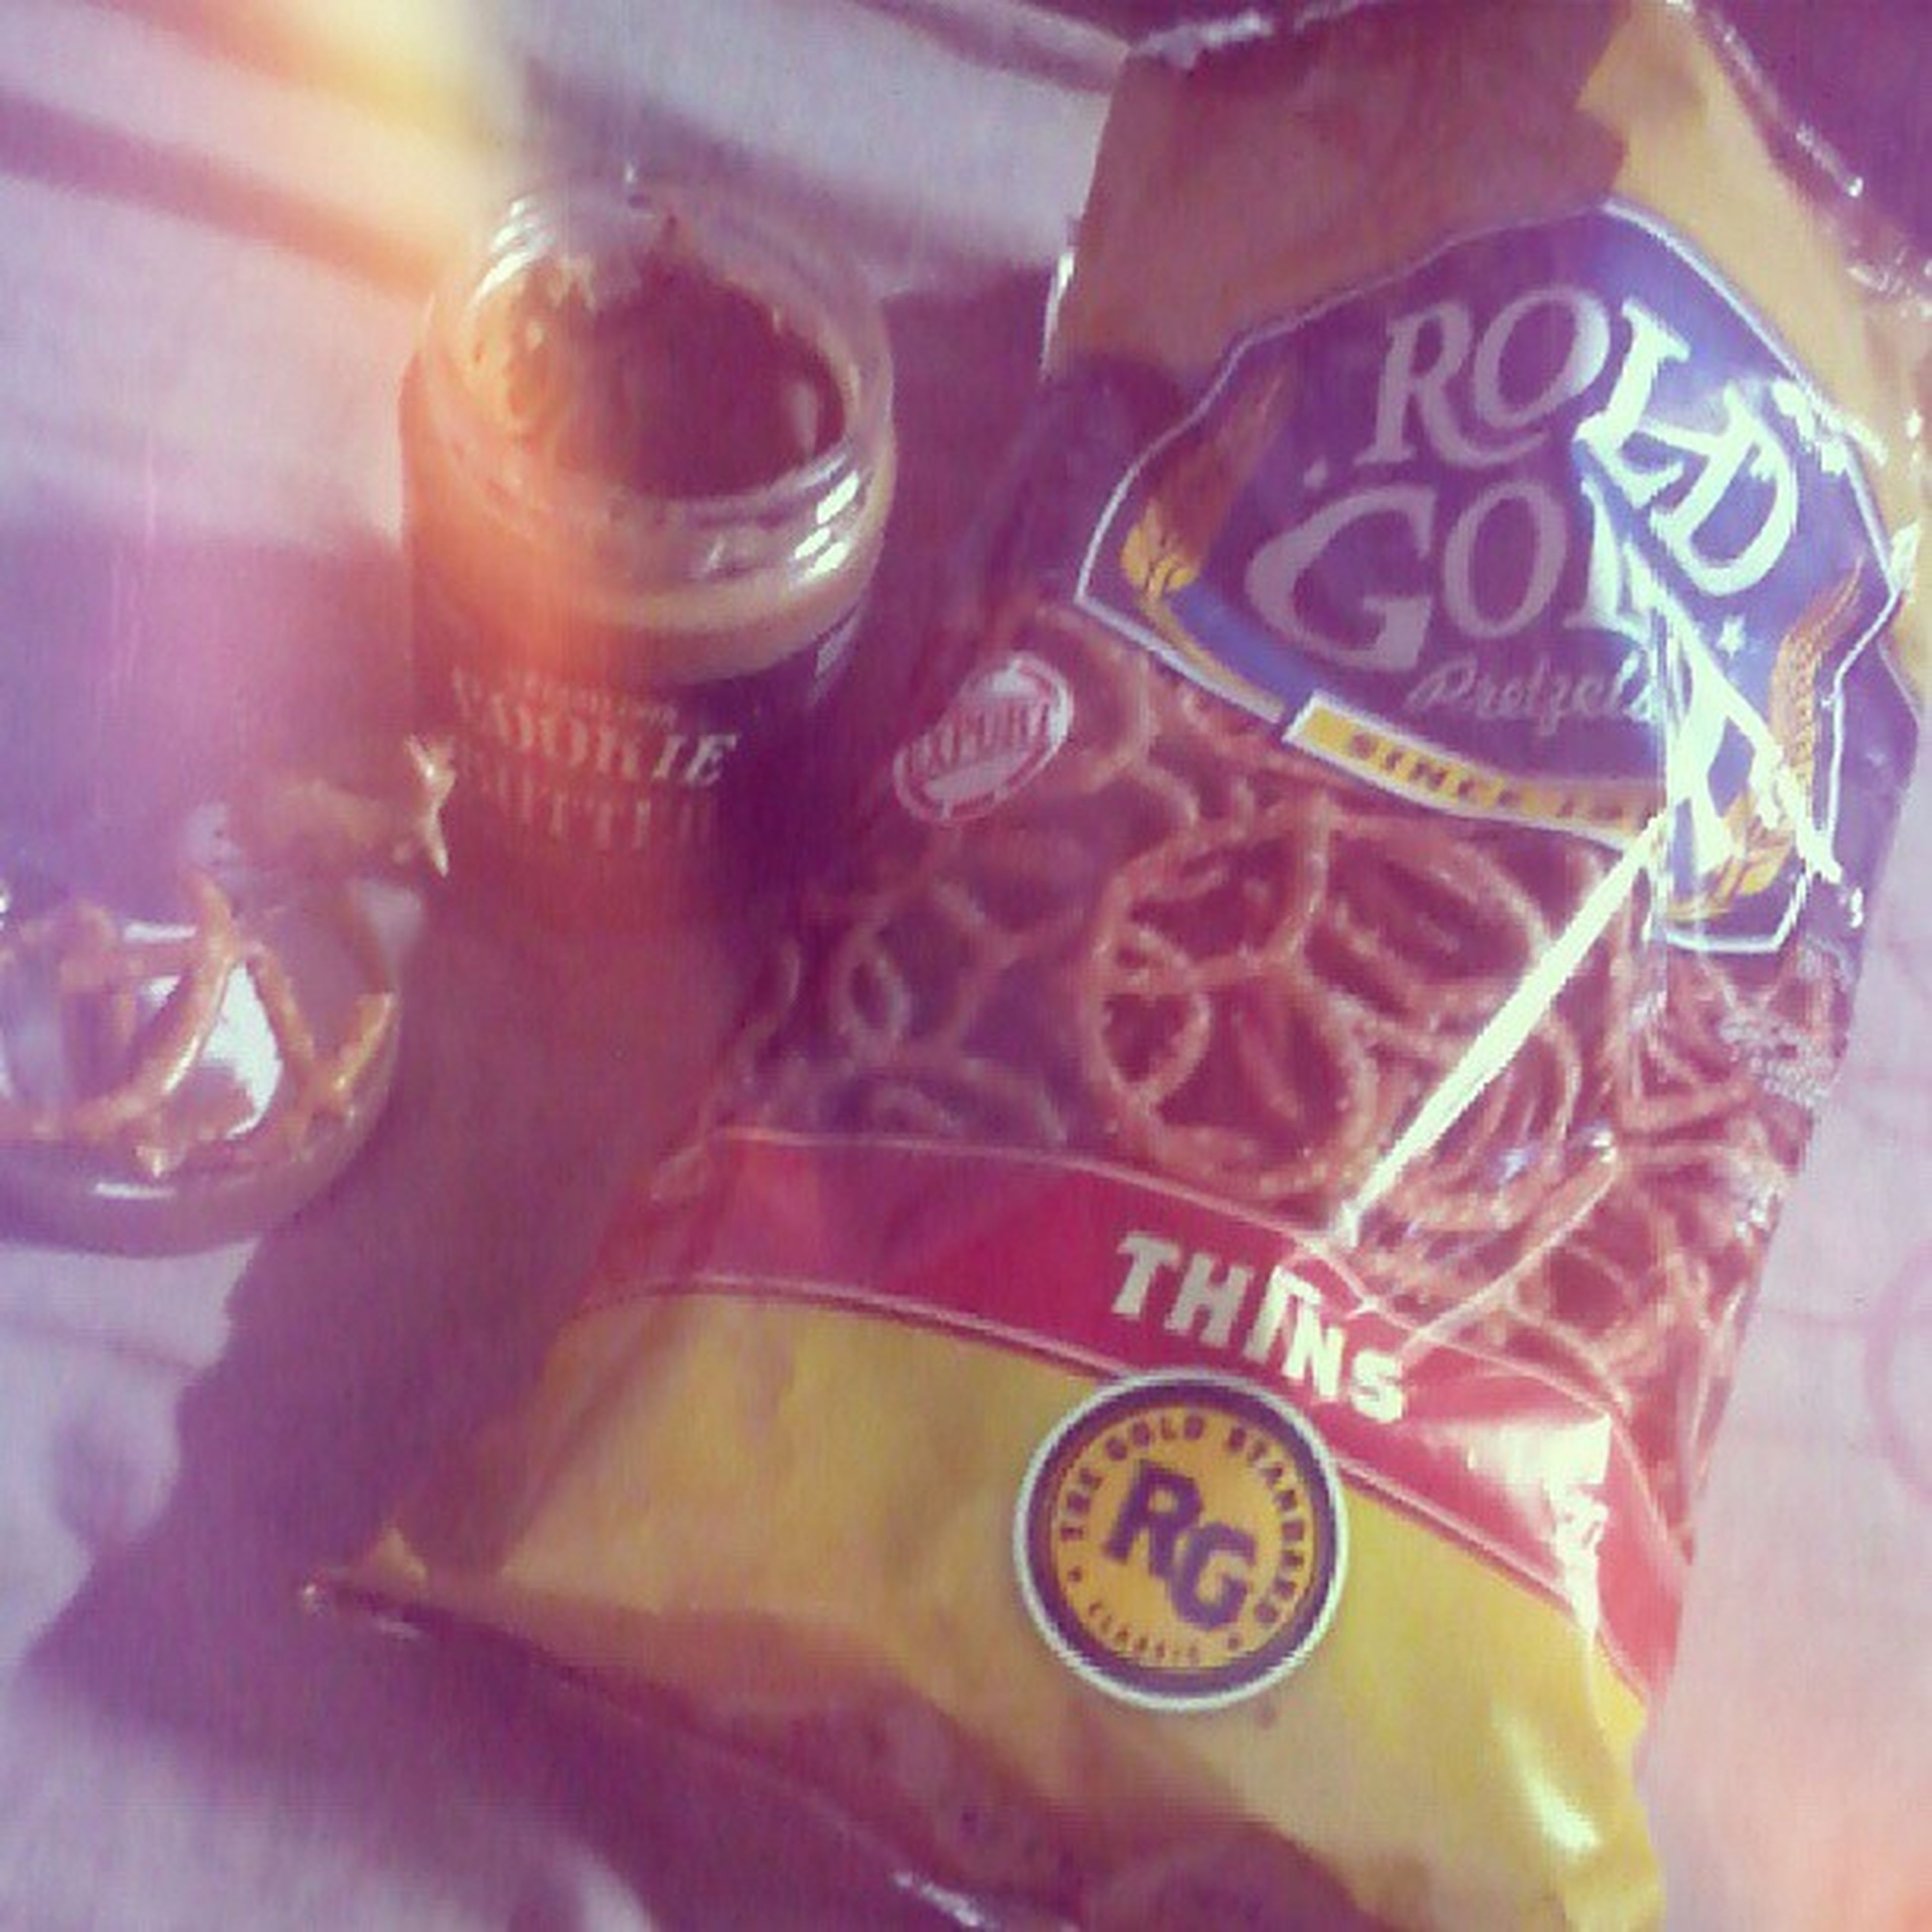 My new fave snack! CookieButter Roldgold Pretzels Sweetnsalty foodie munchies lateupload